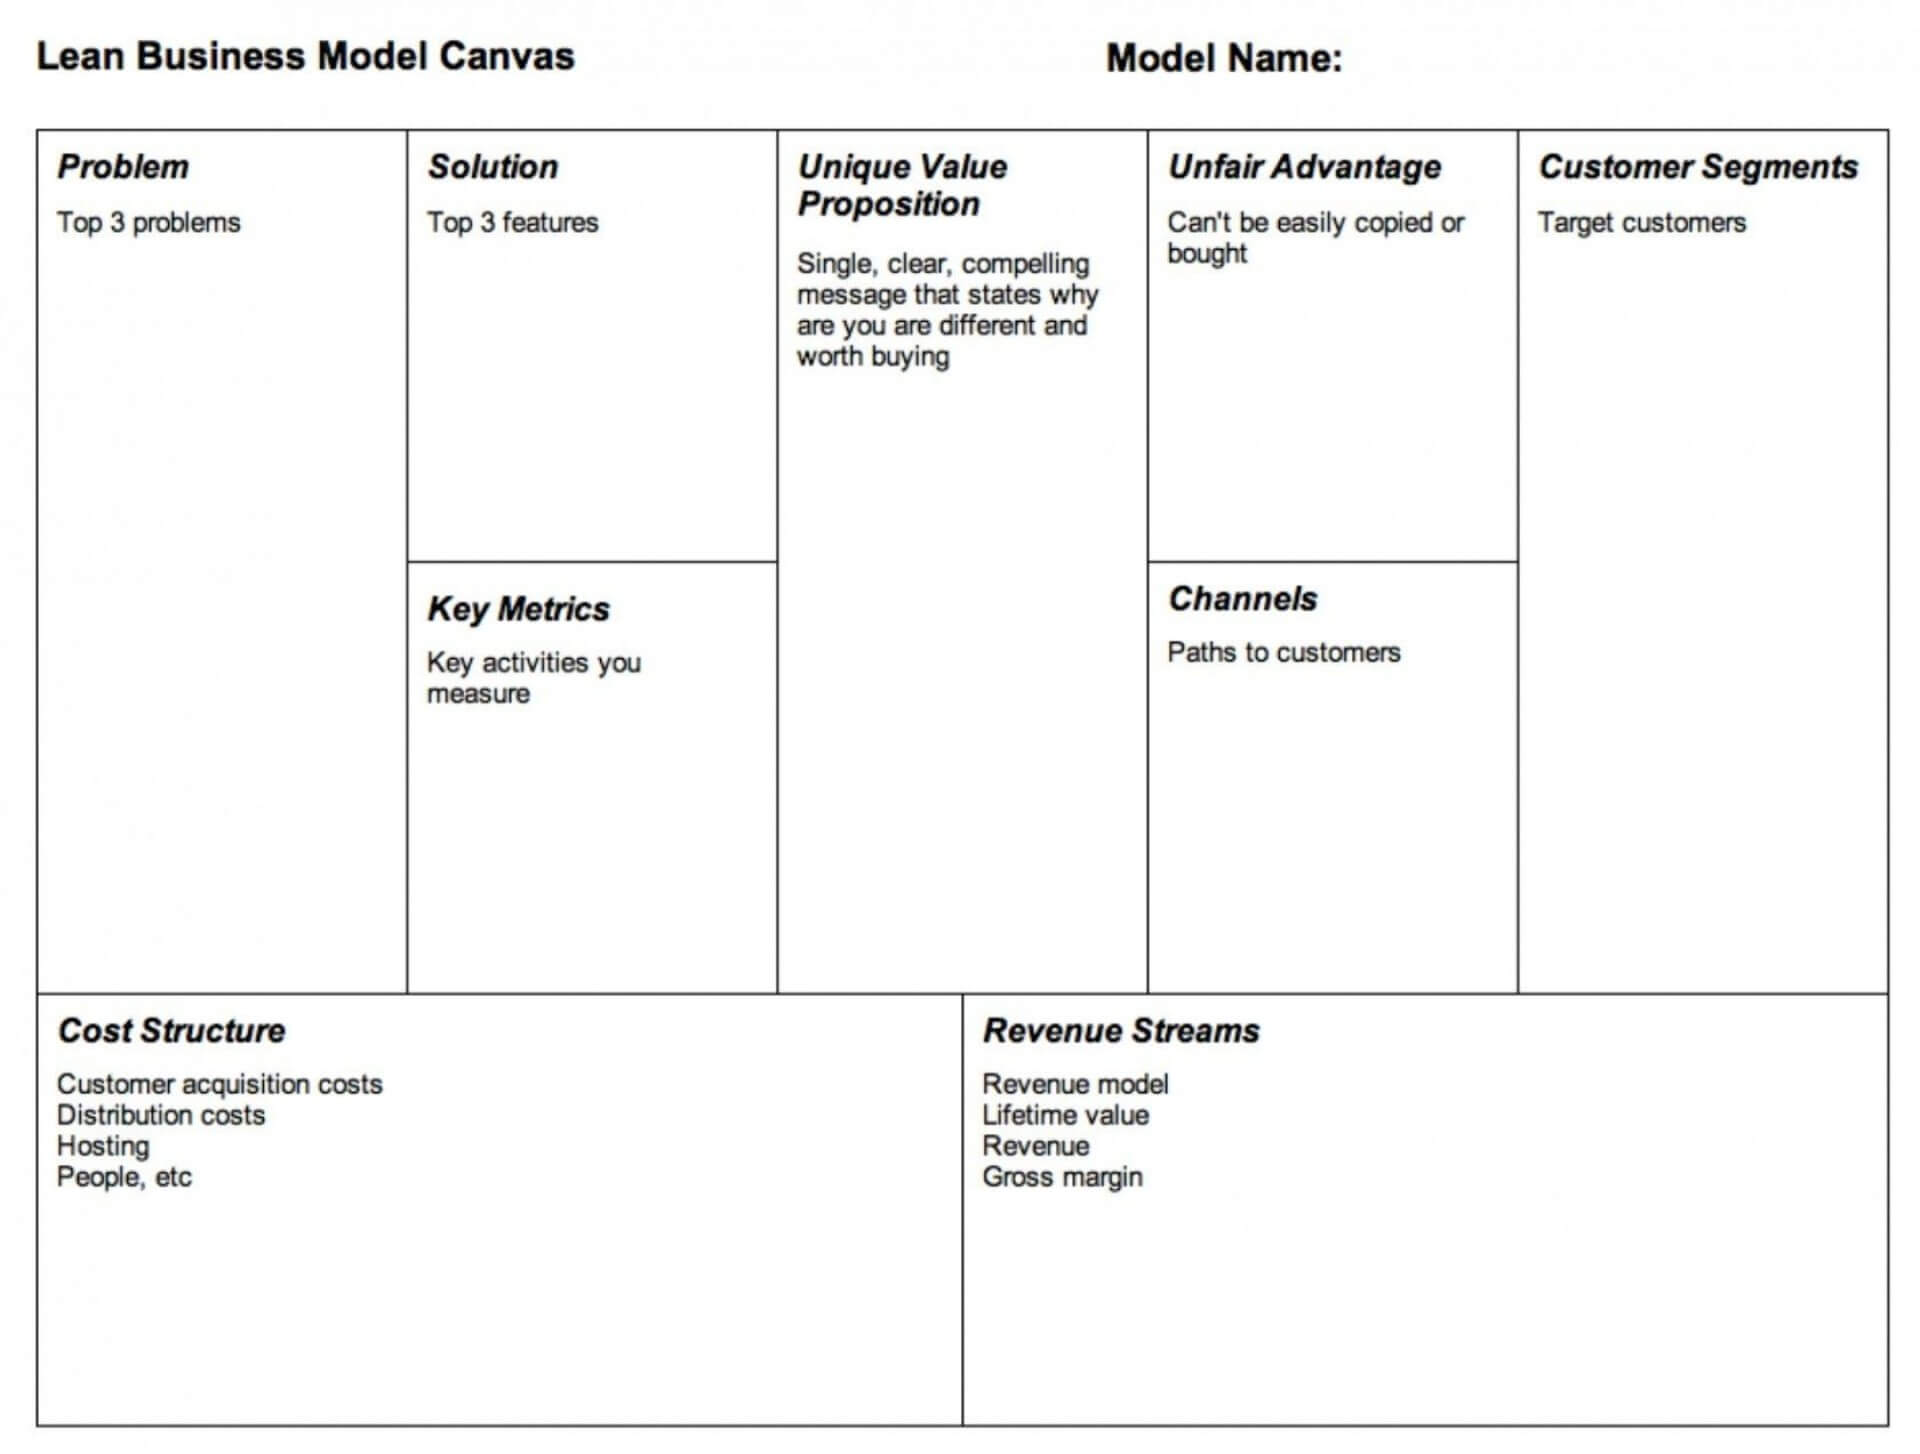 007 Maxresdefault Business Model Canvas Ms Word Template With Regard To Business Canvas Word Template